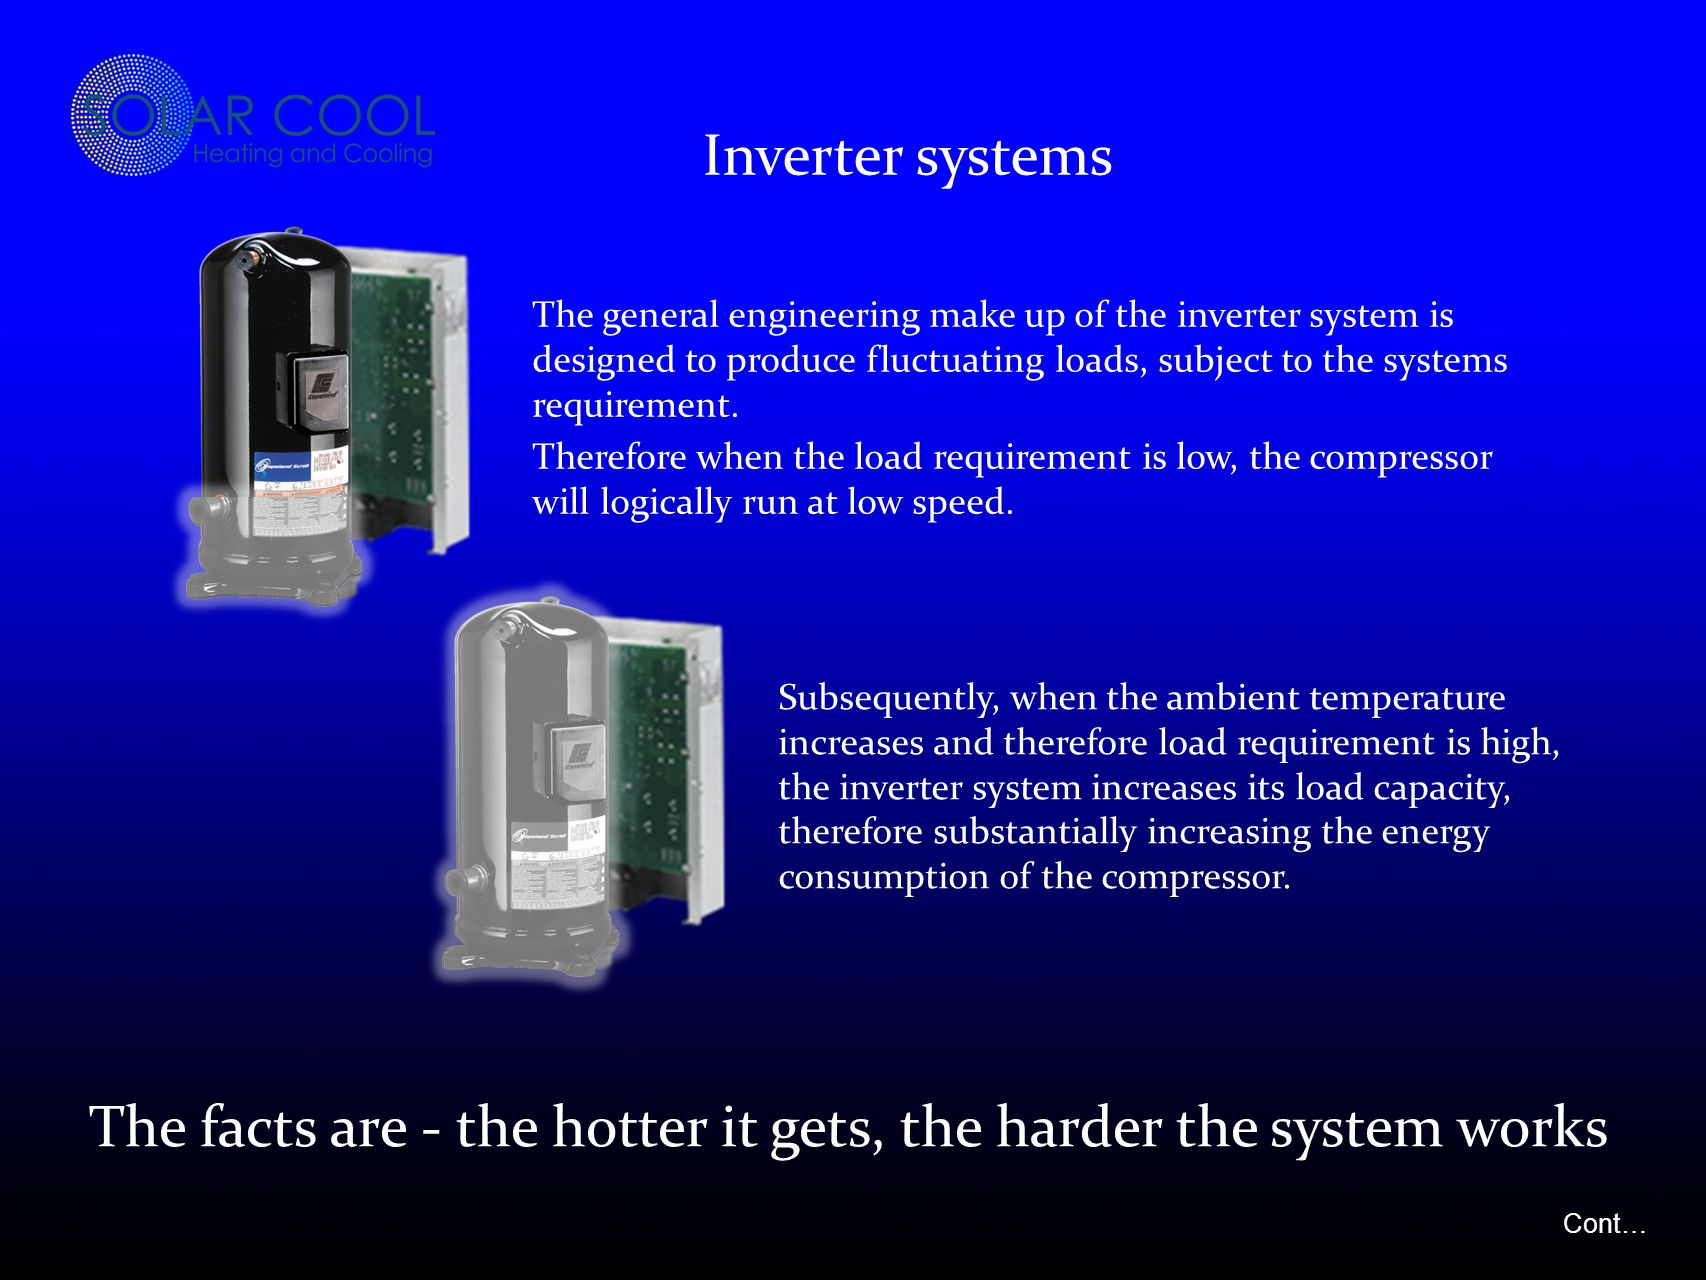 The general engineering make up of the inverter system is designed to produce fluctuating loads, subject to the systems requirement.